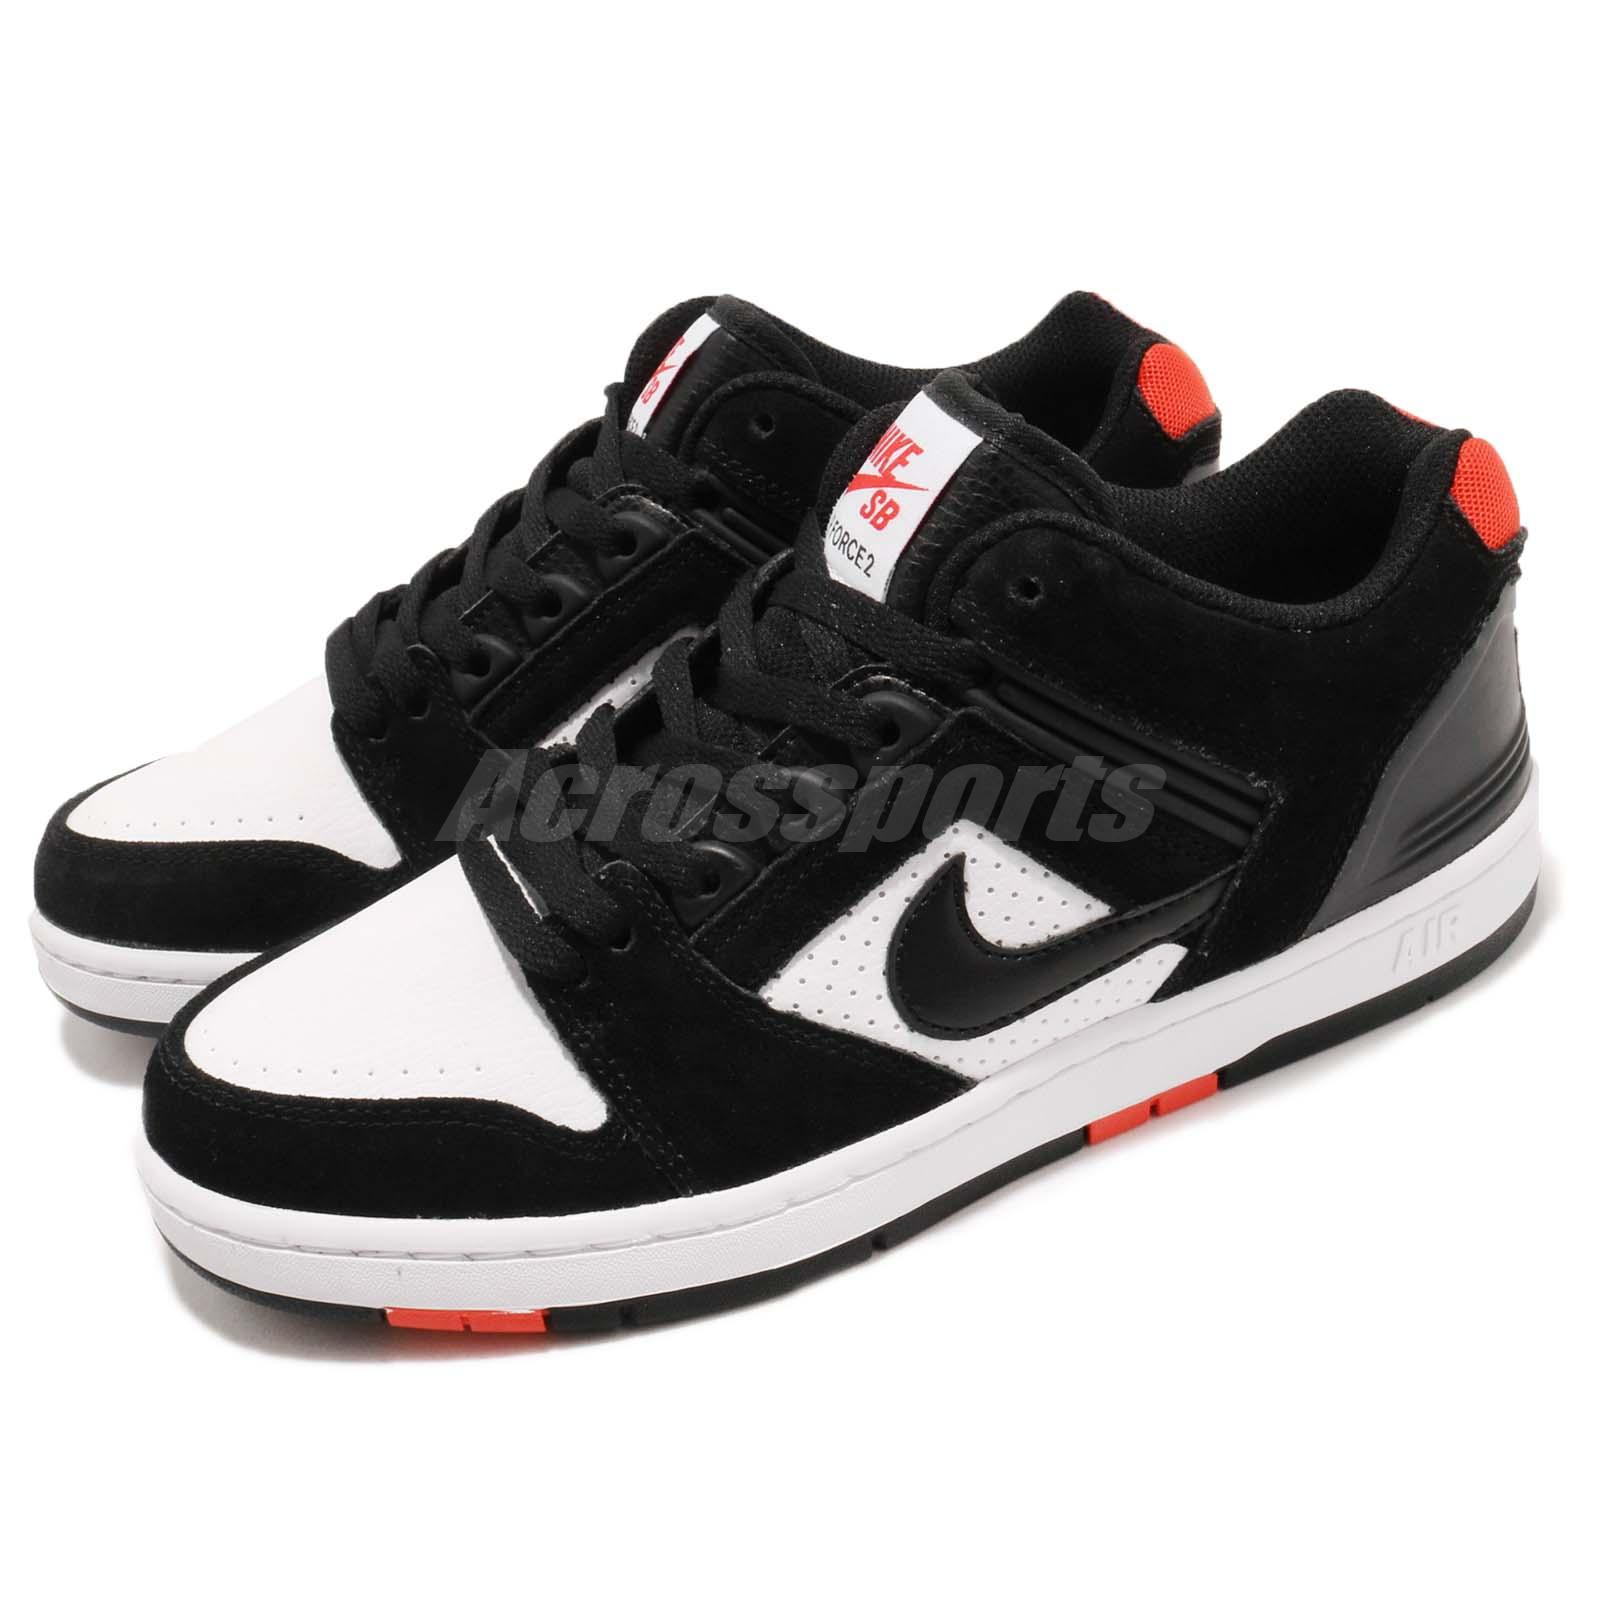 e044e5aaee21 Details about Nike SB Air Force II Low 2 Black White Red Men Skate Boarding  Shoes AO0300-006